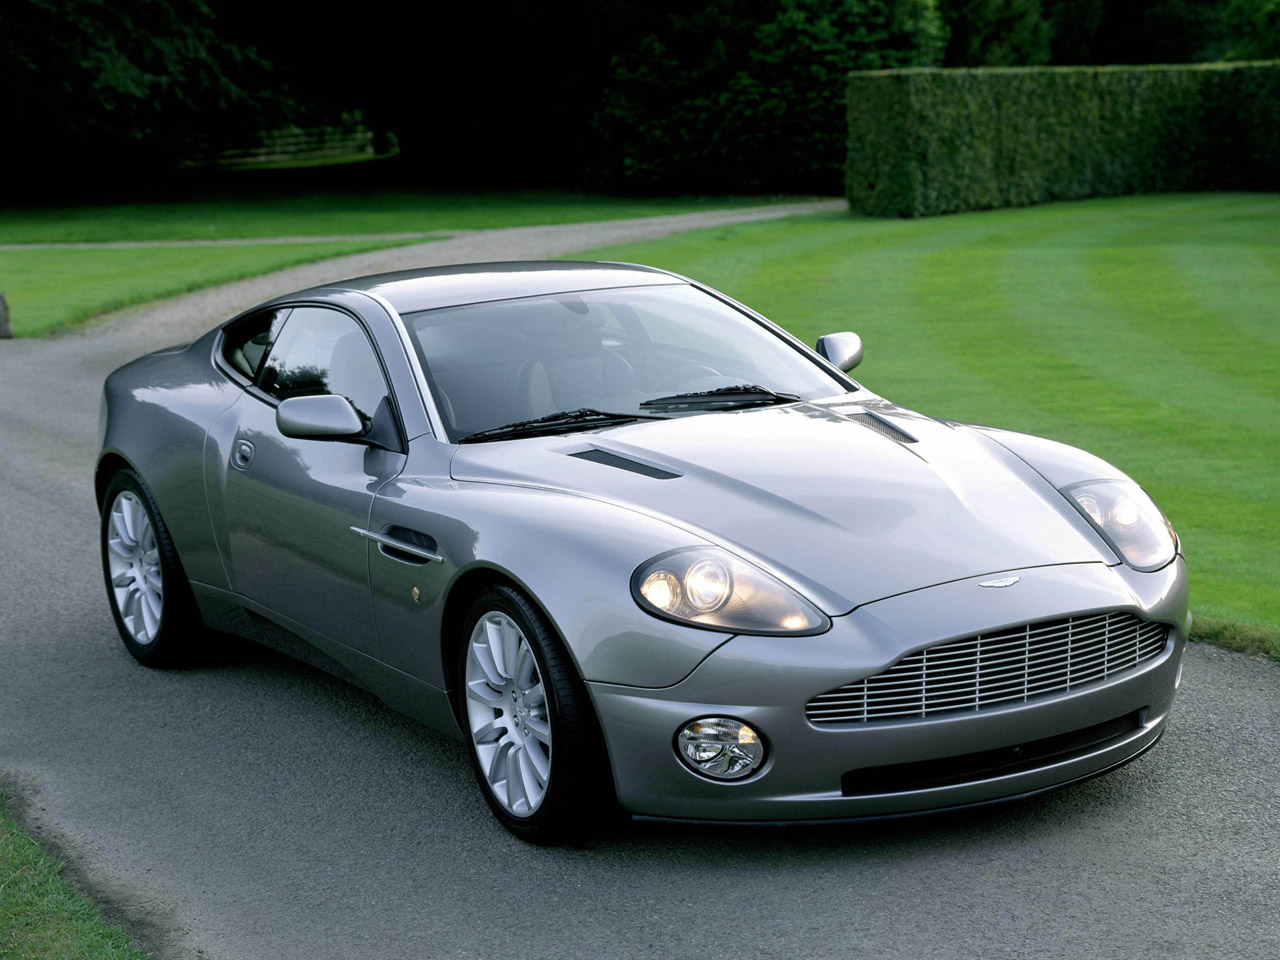 Aston Martin Pictures, Pics, Wallpapers, Photos & Images